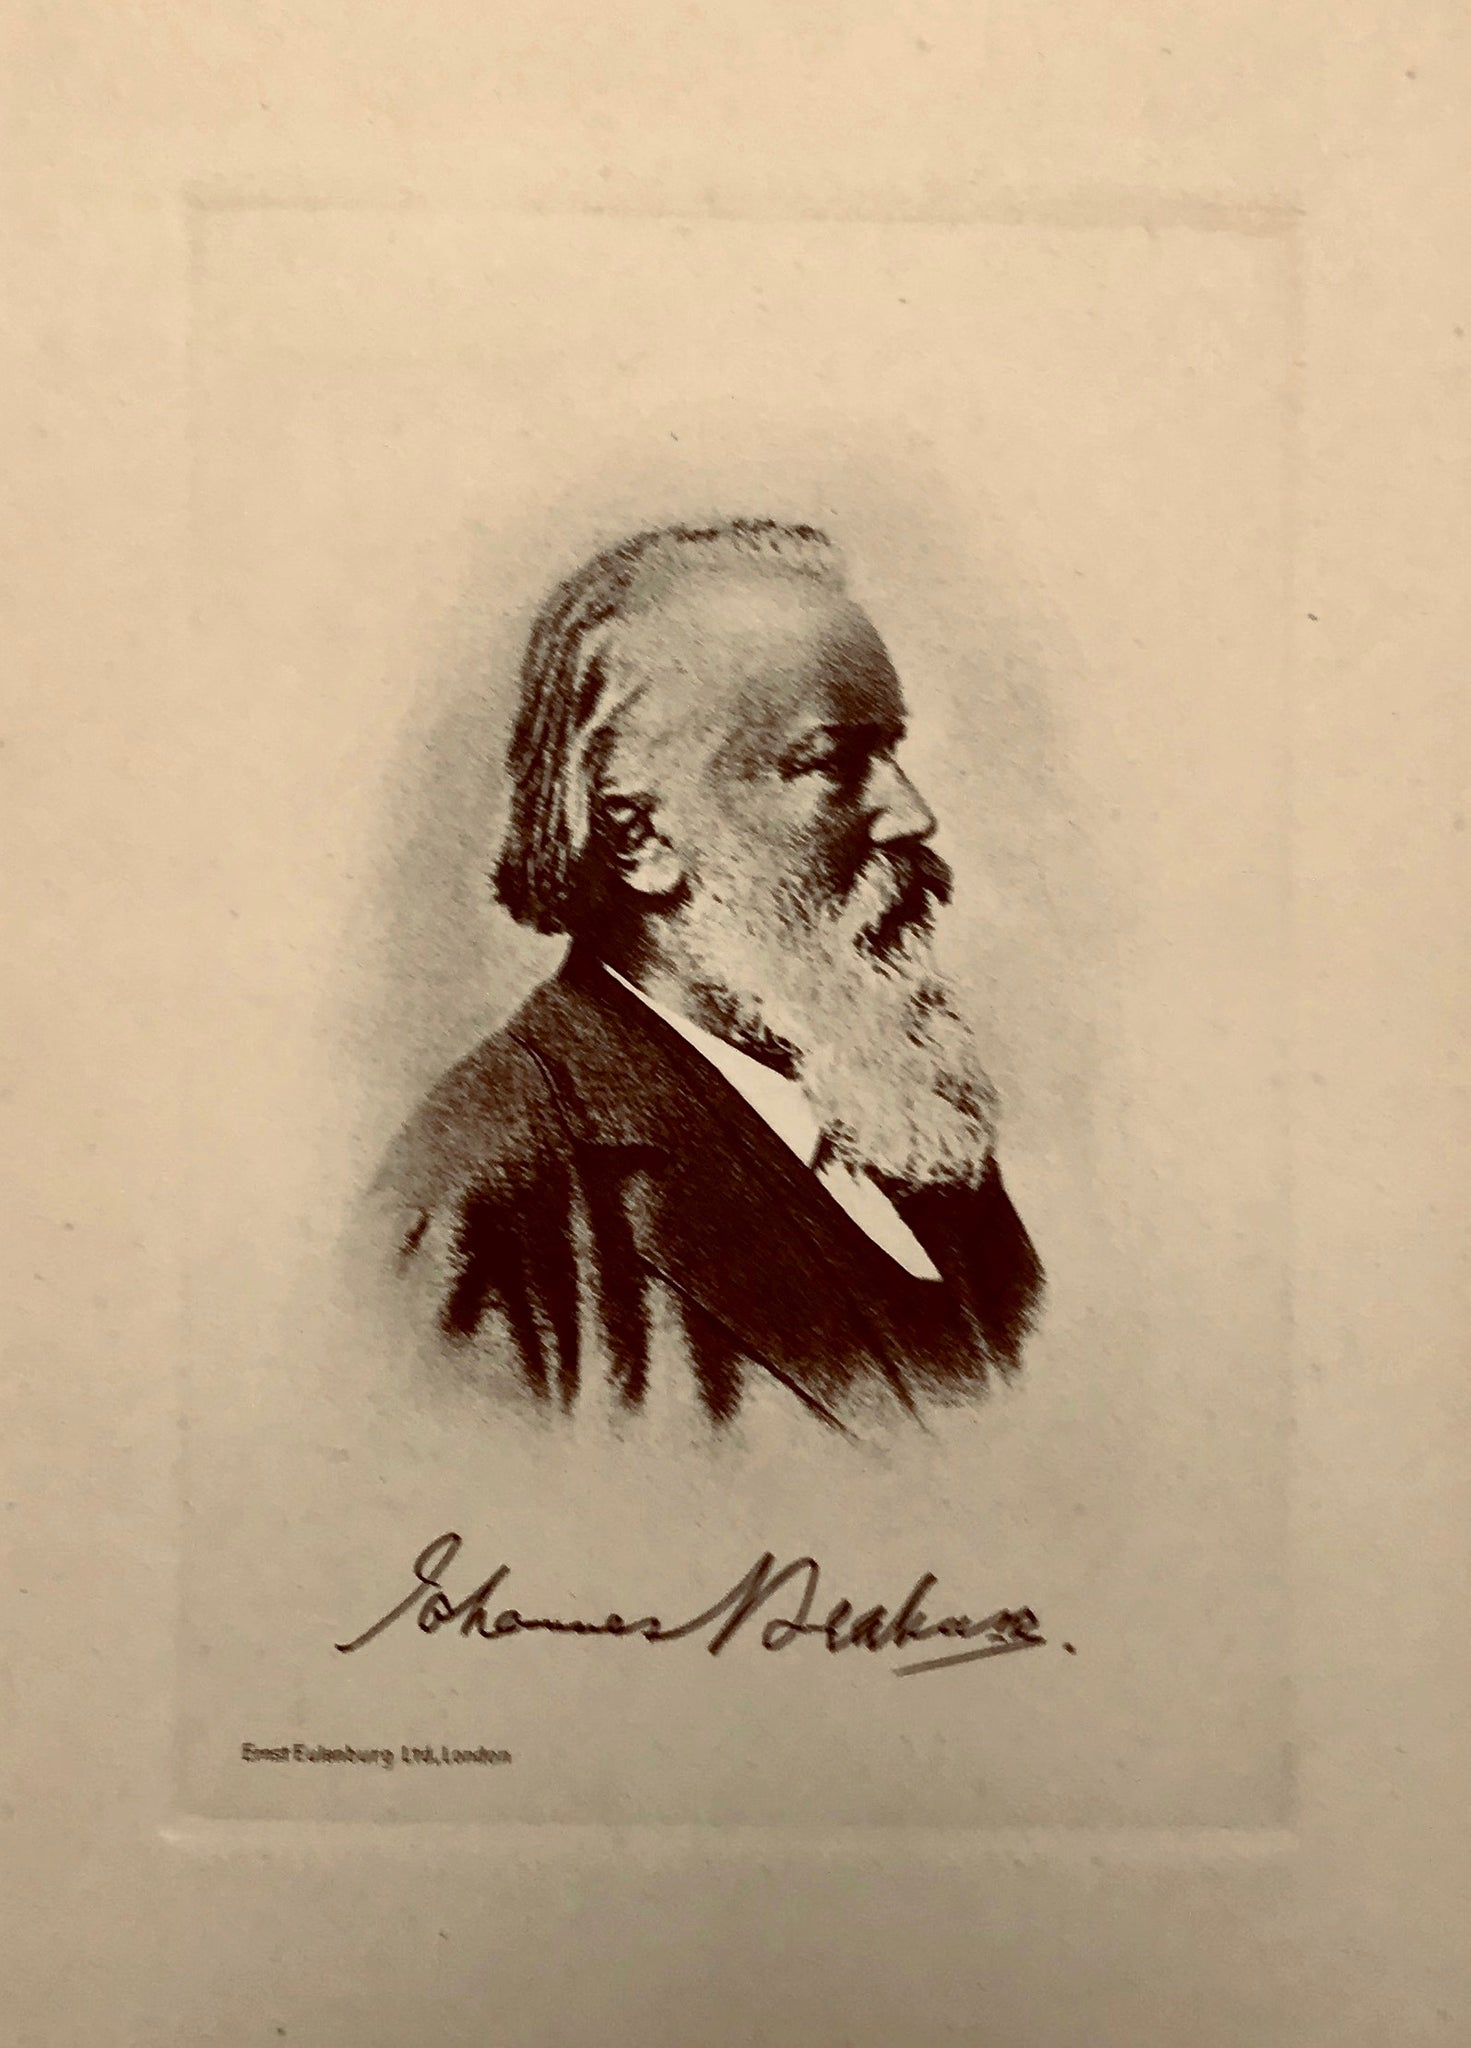 """Johannes Brahms""  Etching published by Erst Eulenburg in London ca 1885."